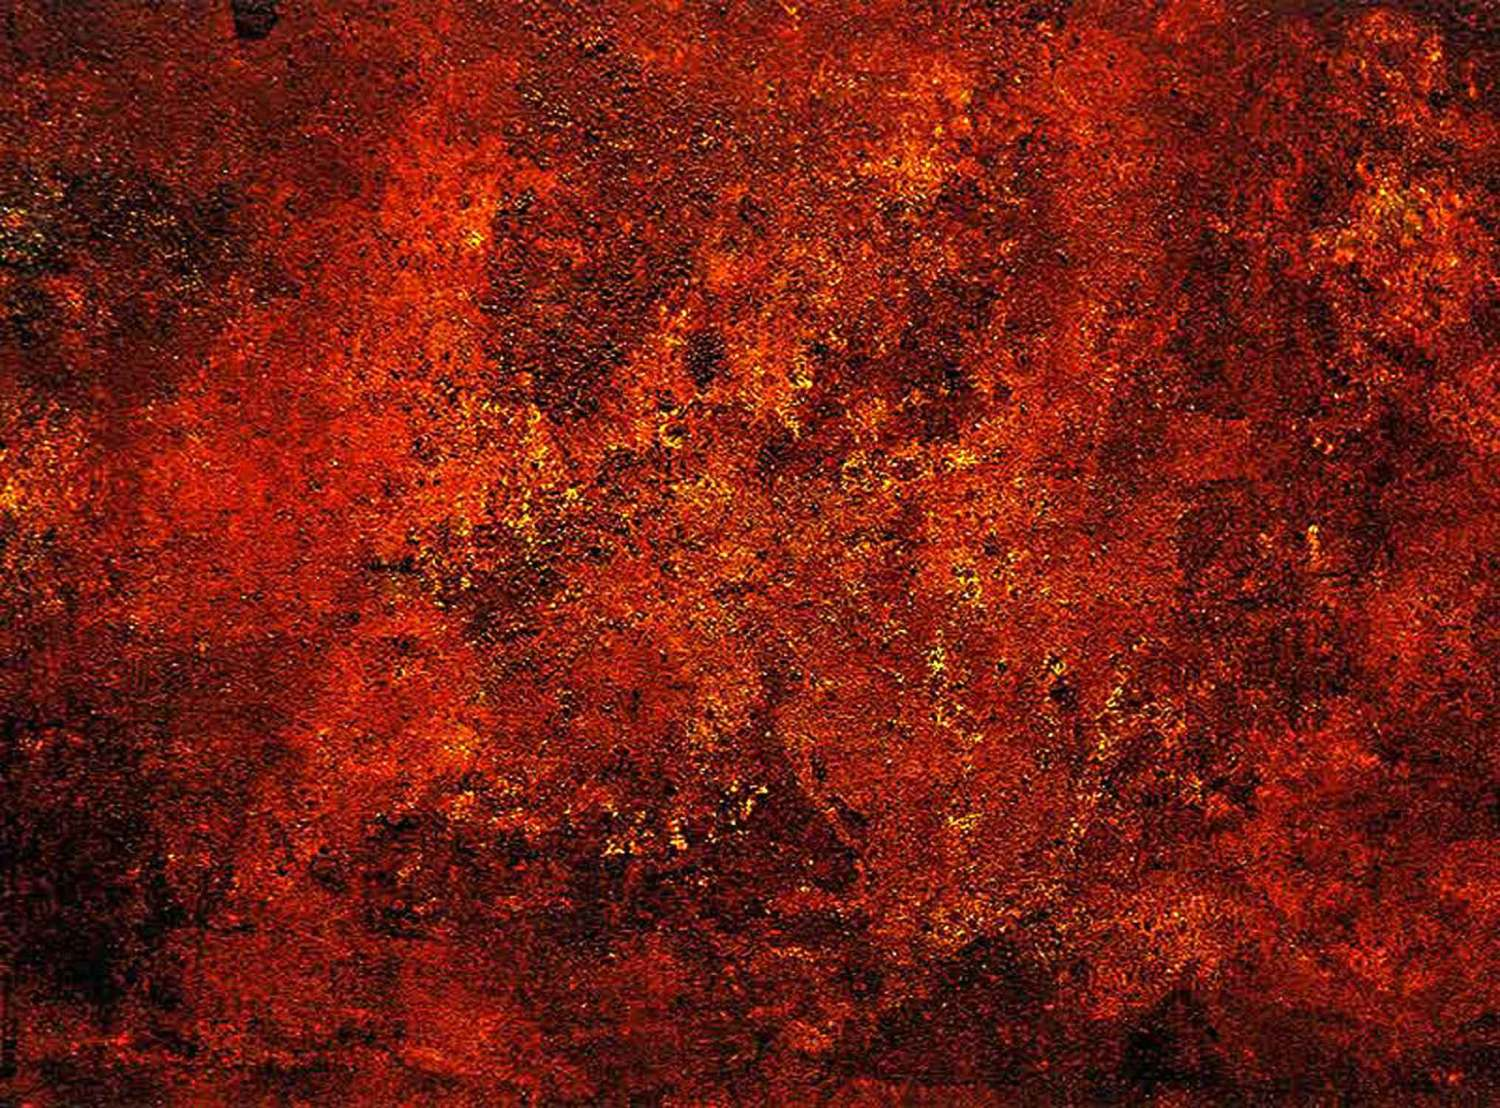 miles´ mode - 157 x 208 cm - acrylic, plaster and sand on canvas - 2004